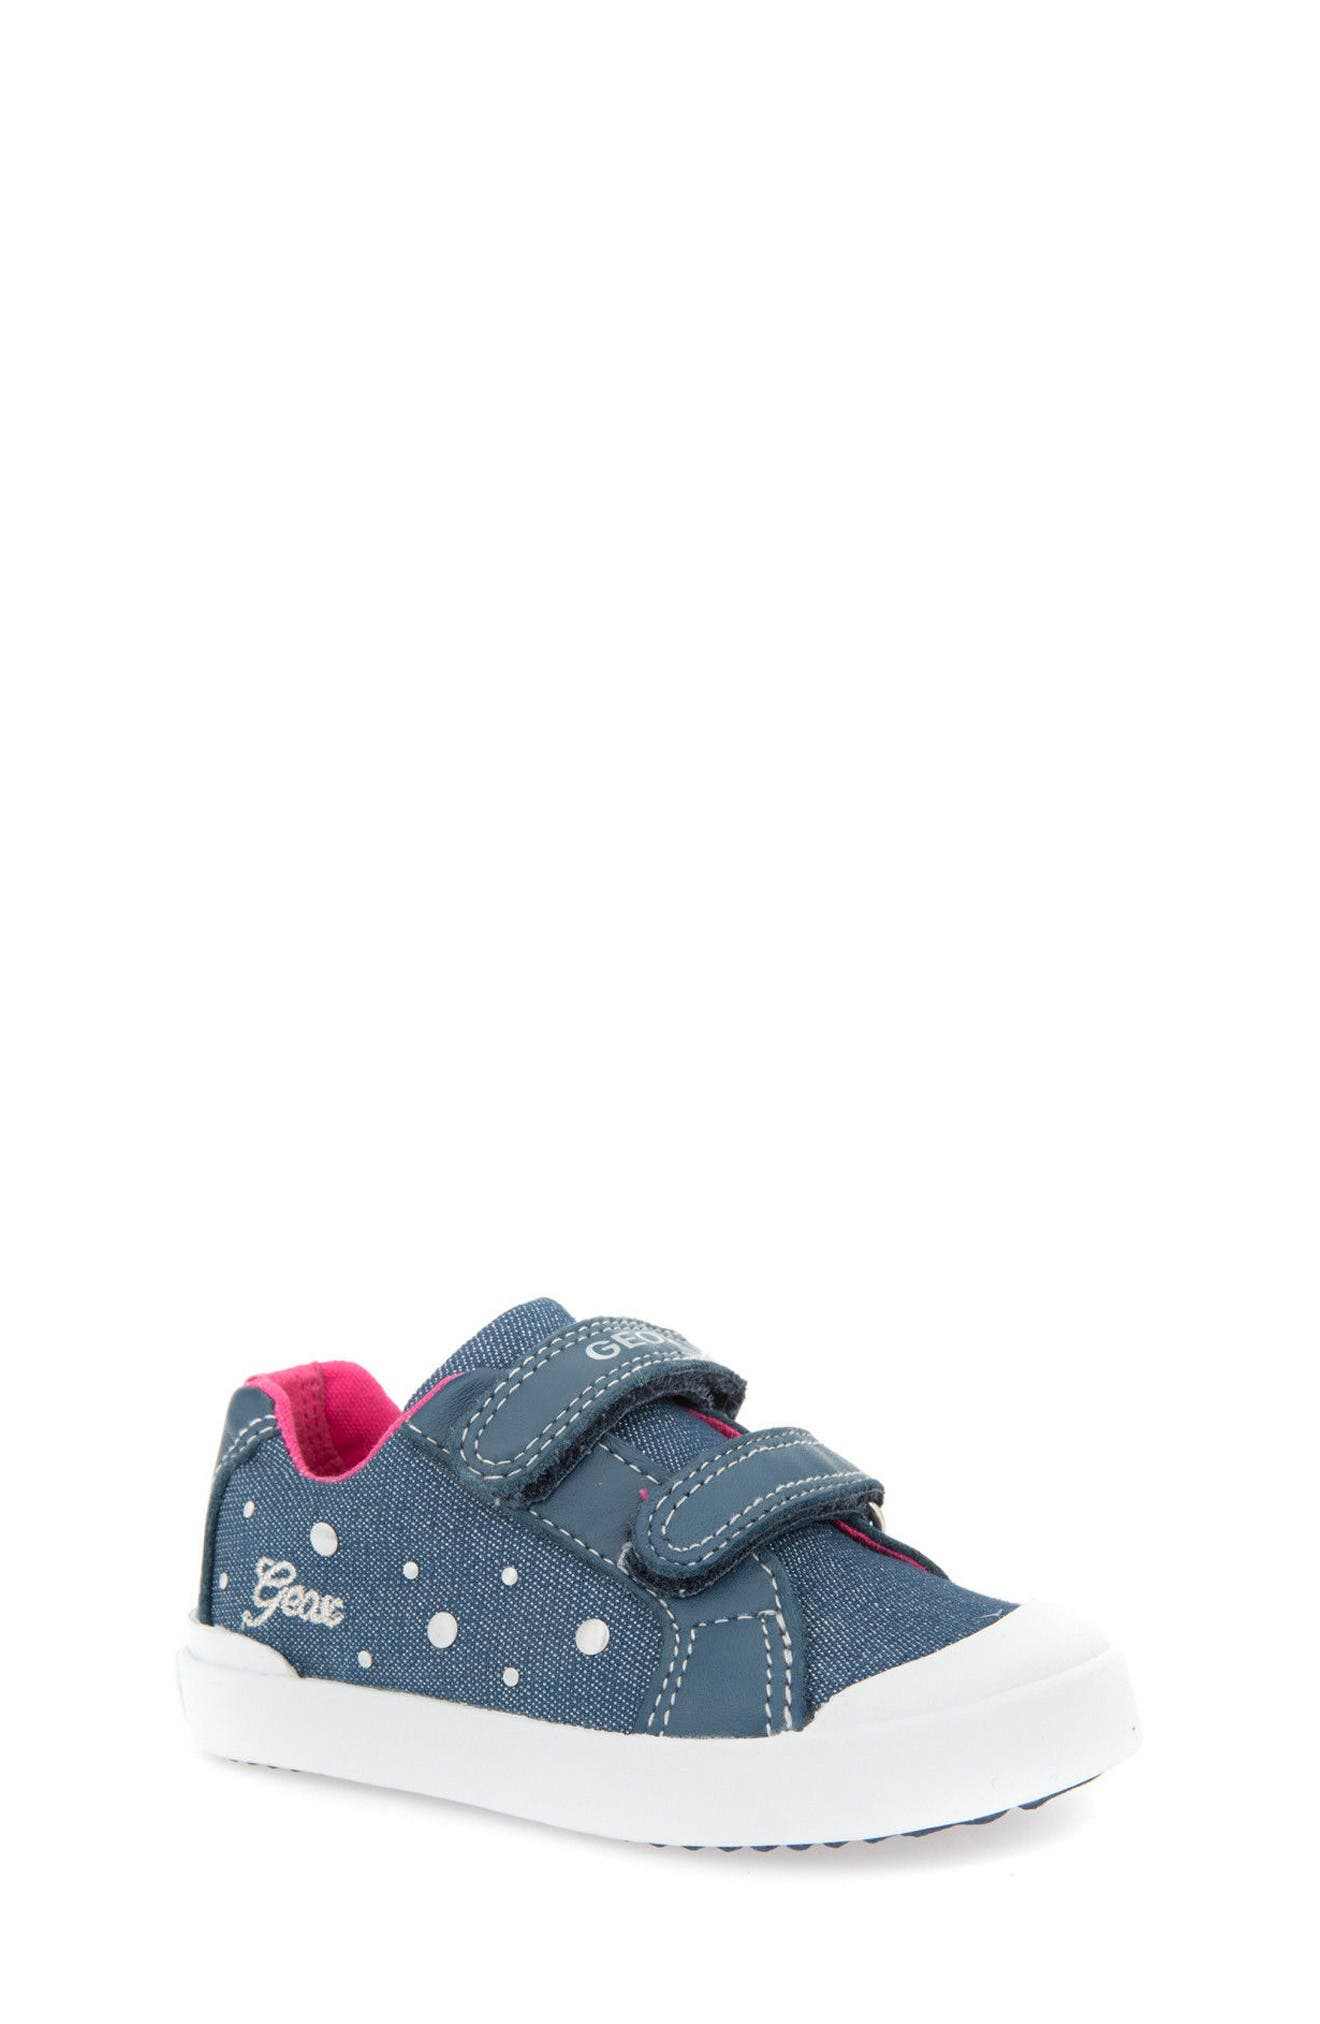 Geox Kiwi Studded Sneaker (Walker & Toddler)